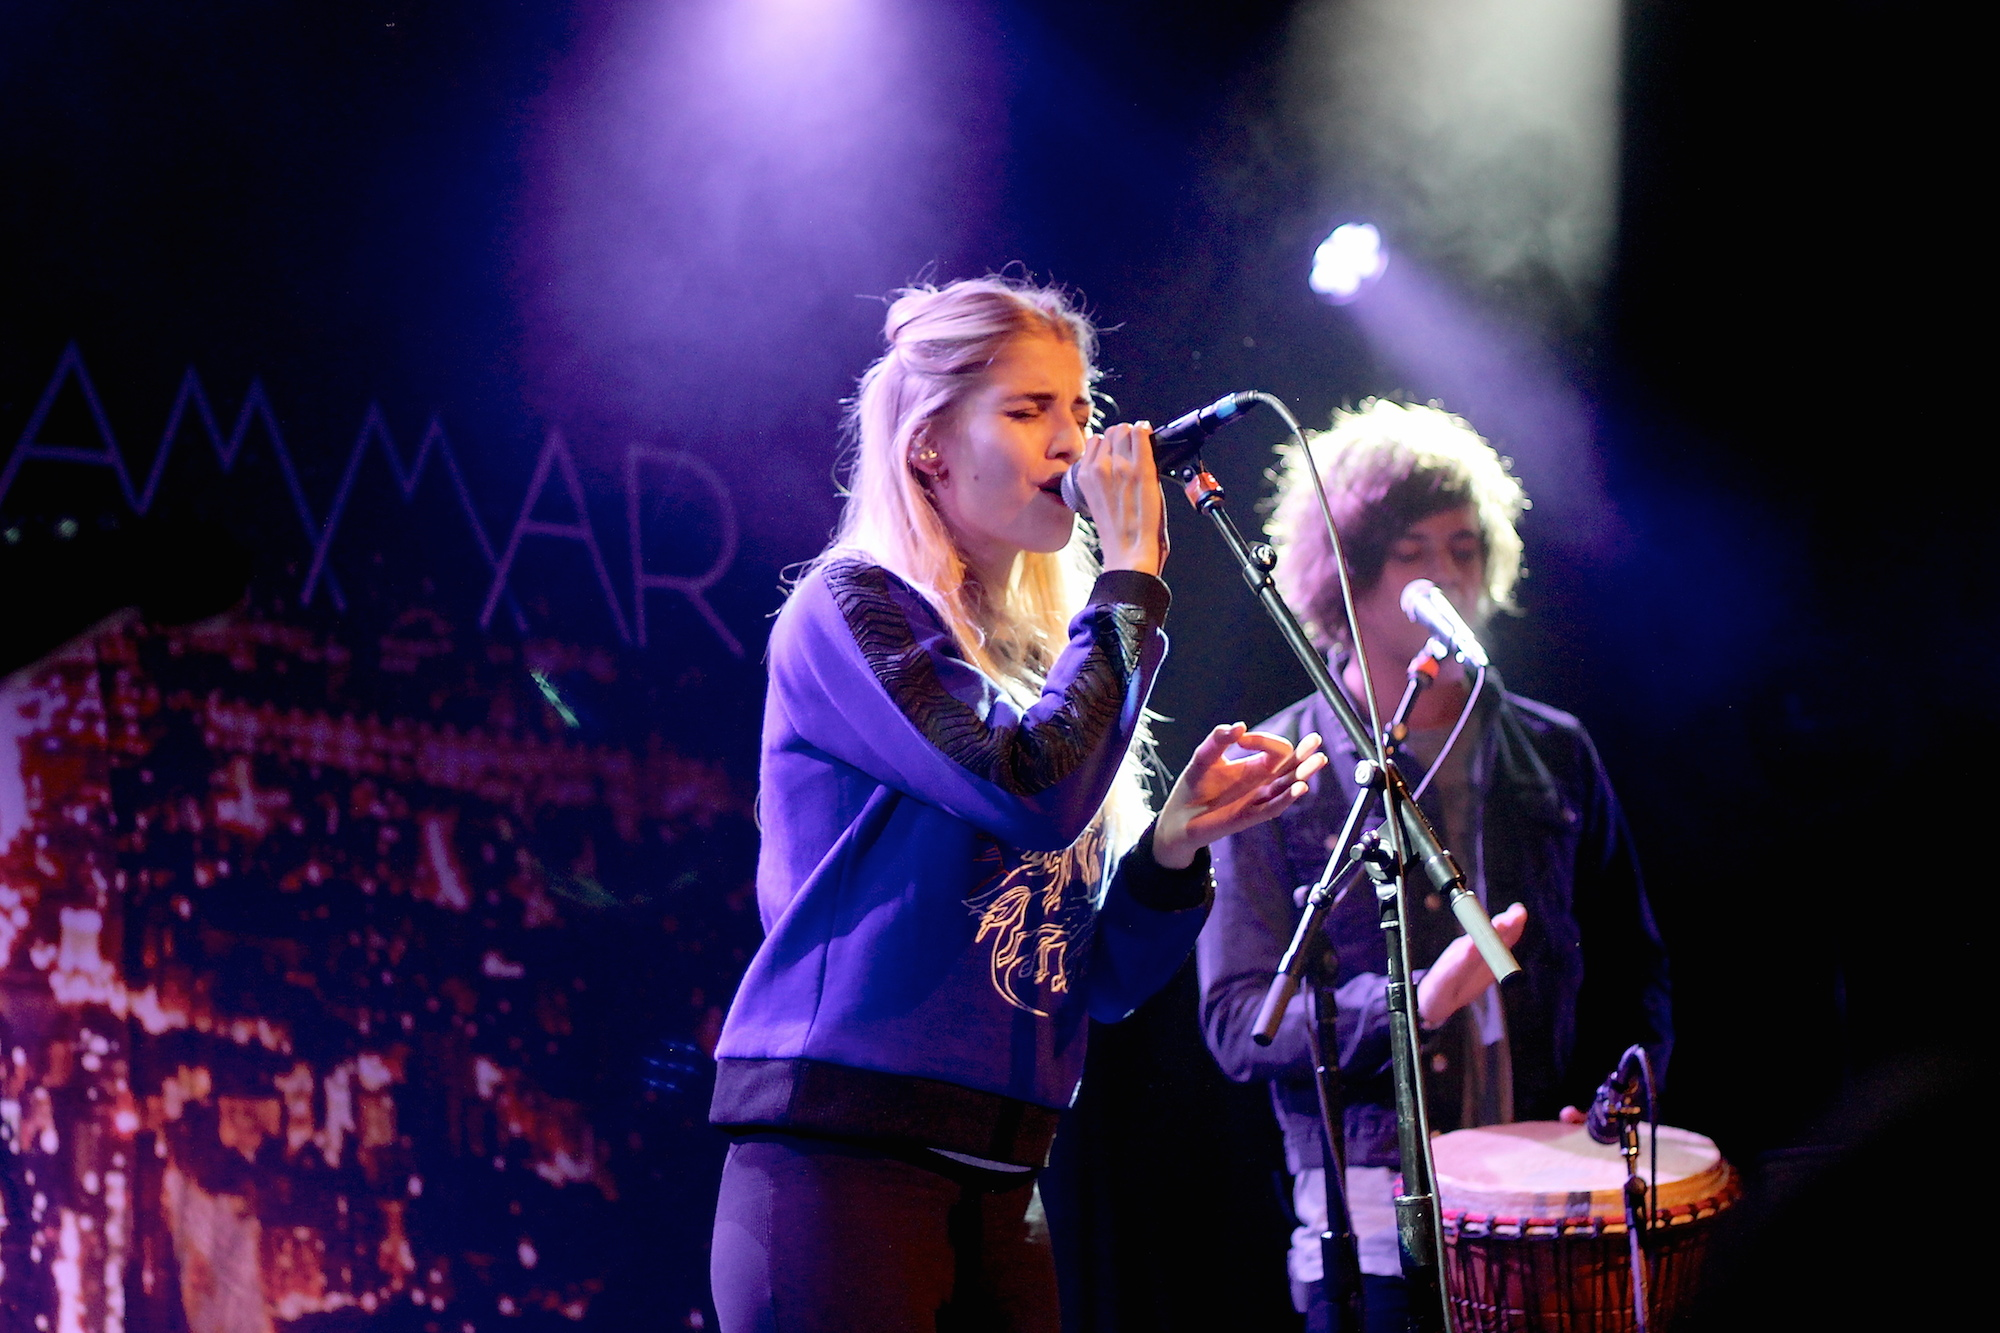 London Grammar leads a vocal chord workout at The Independent